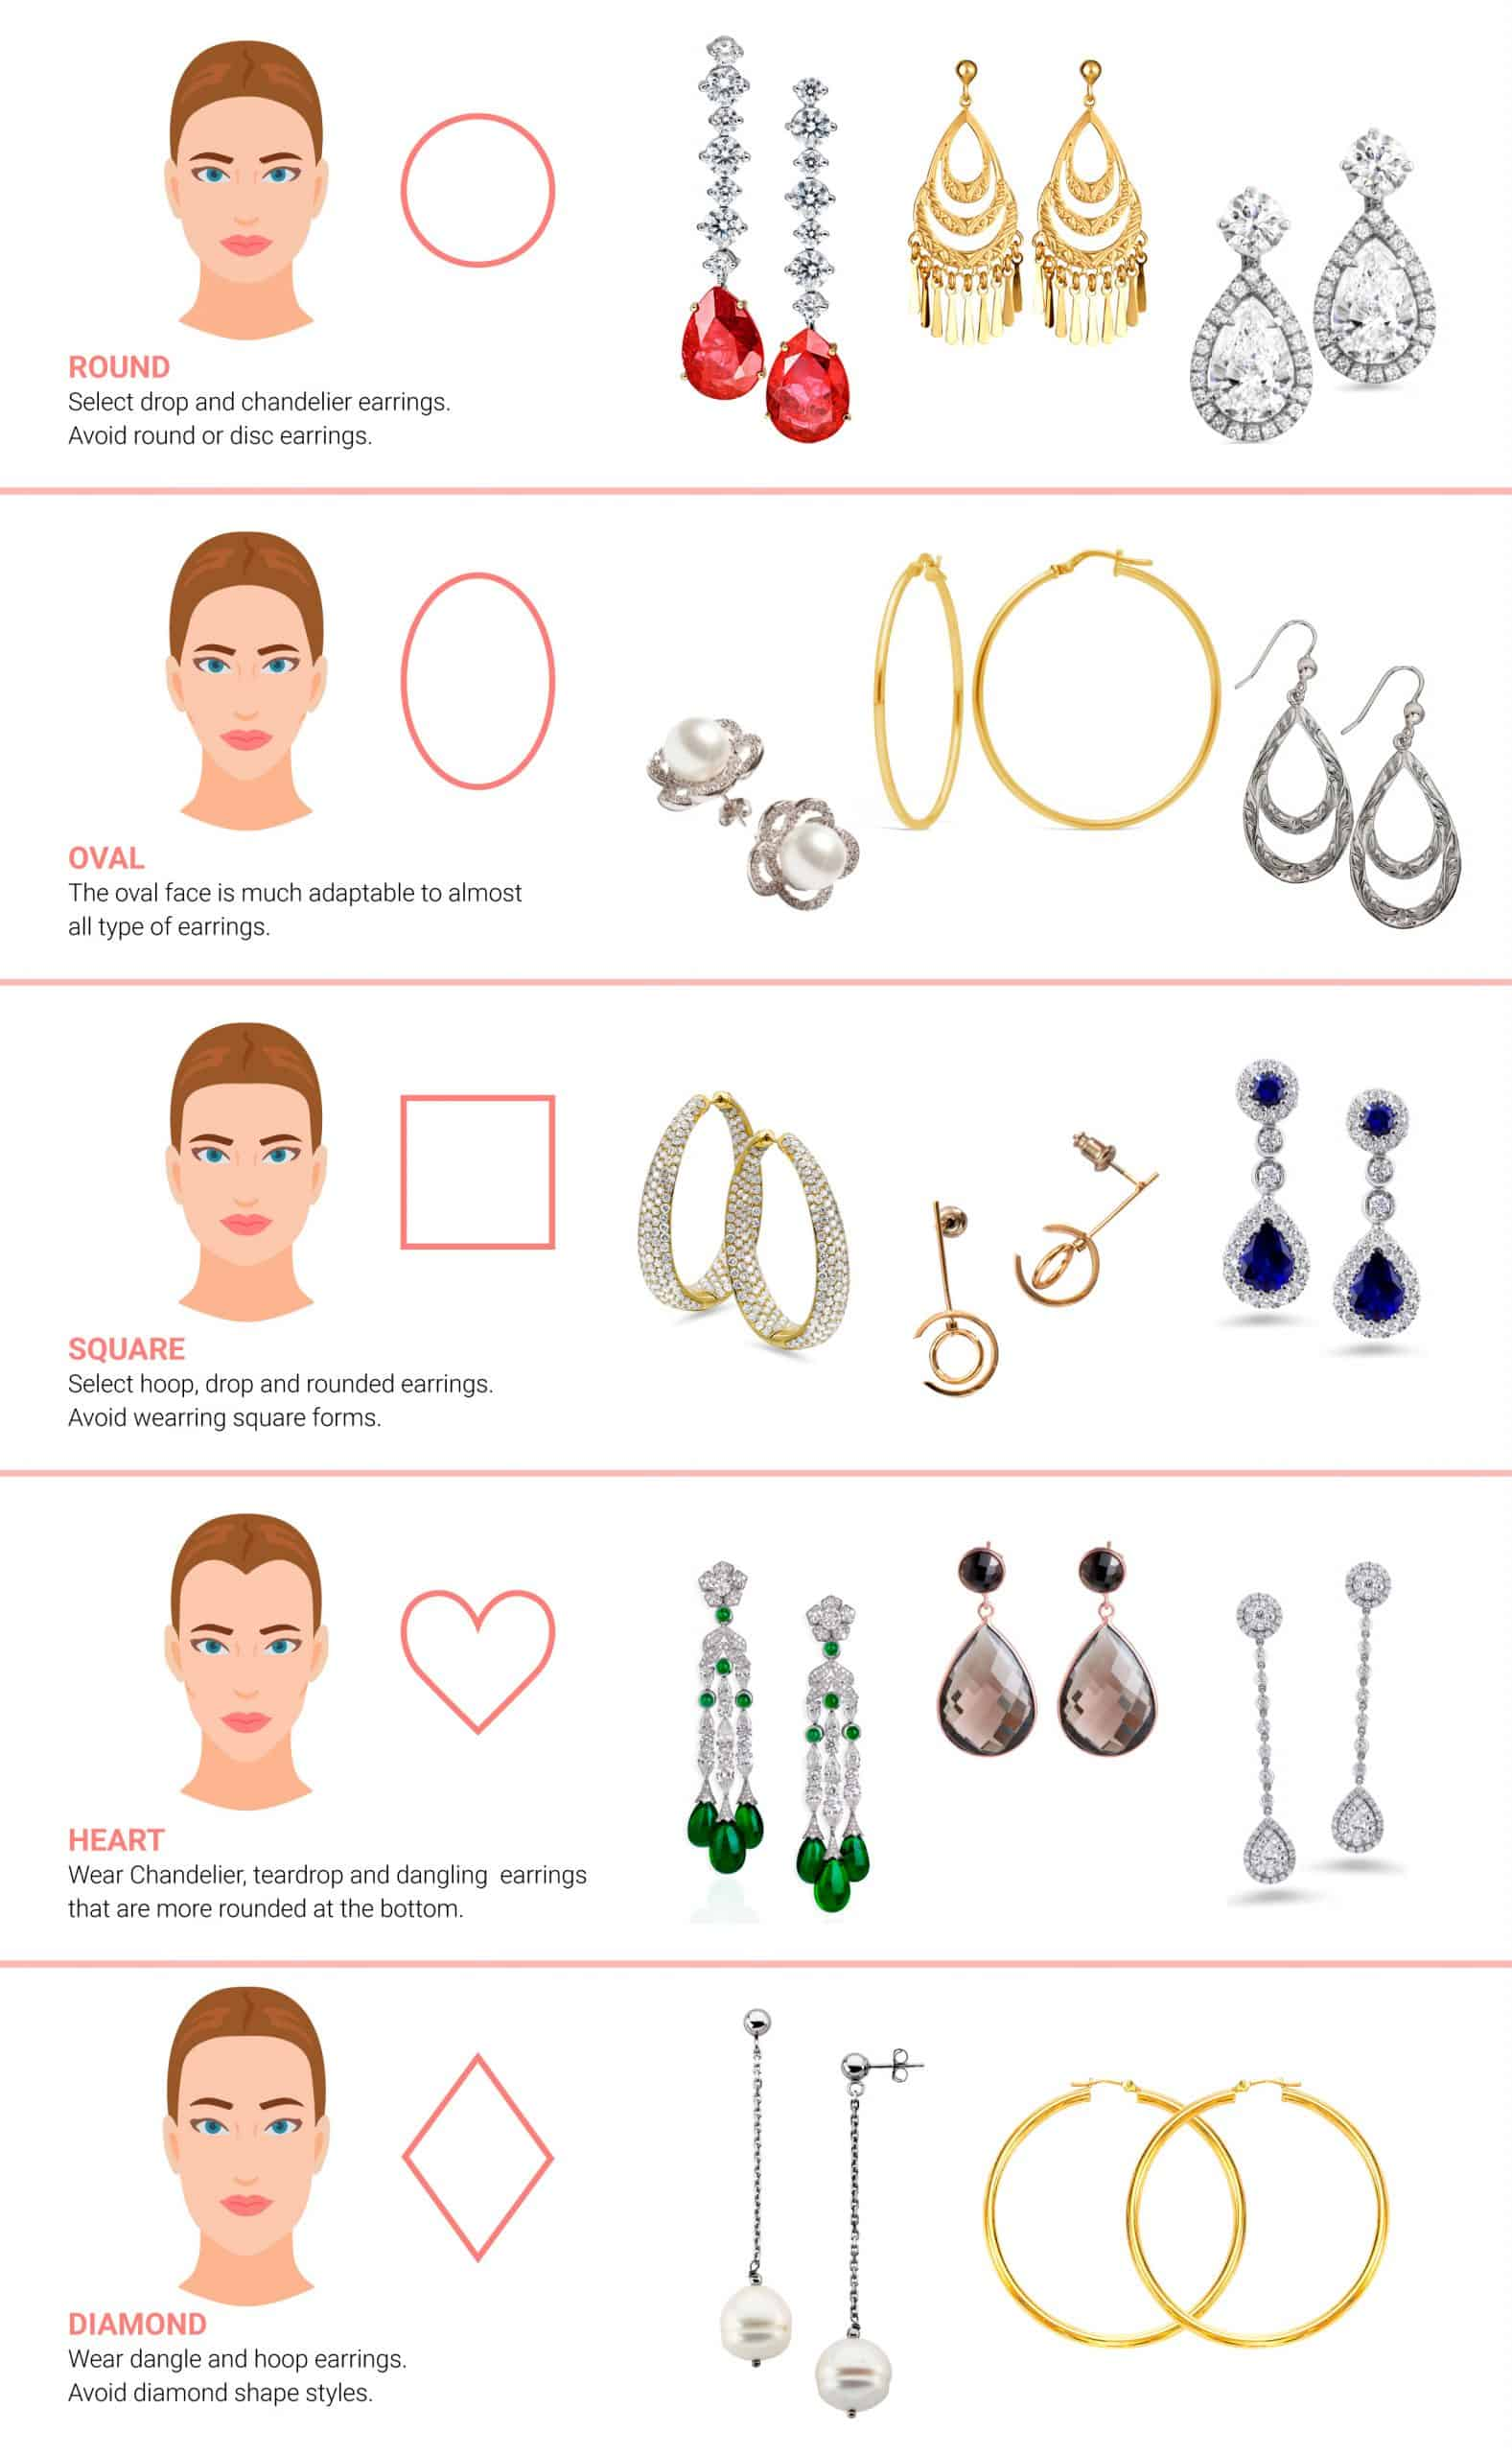 How to choose perfect earrings model for your face shape